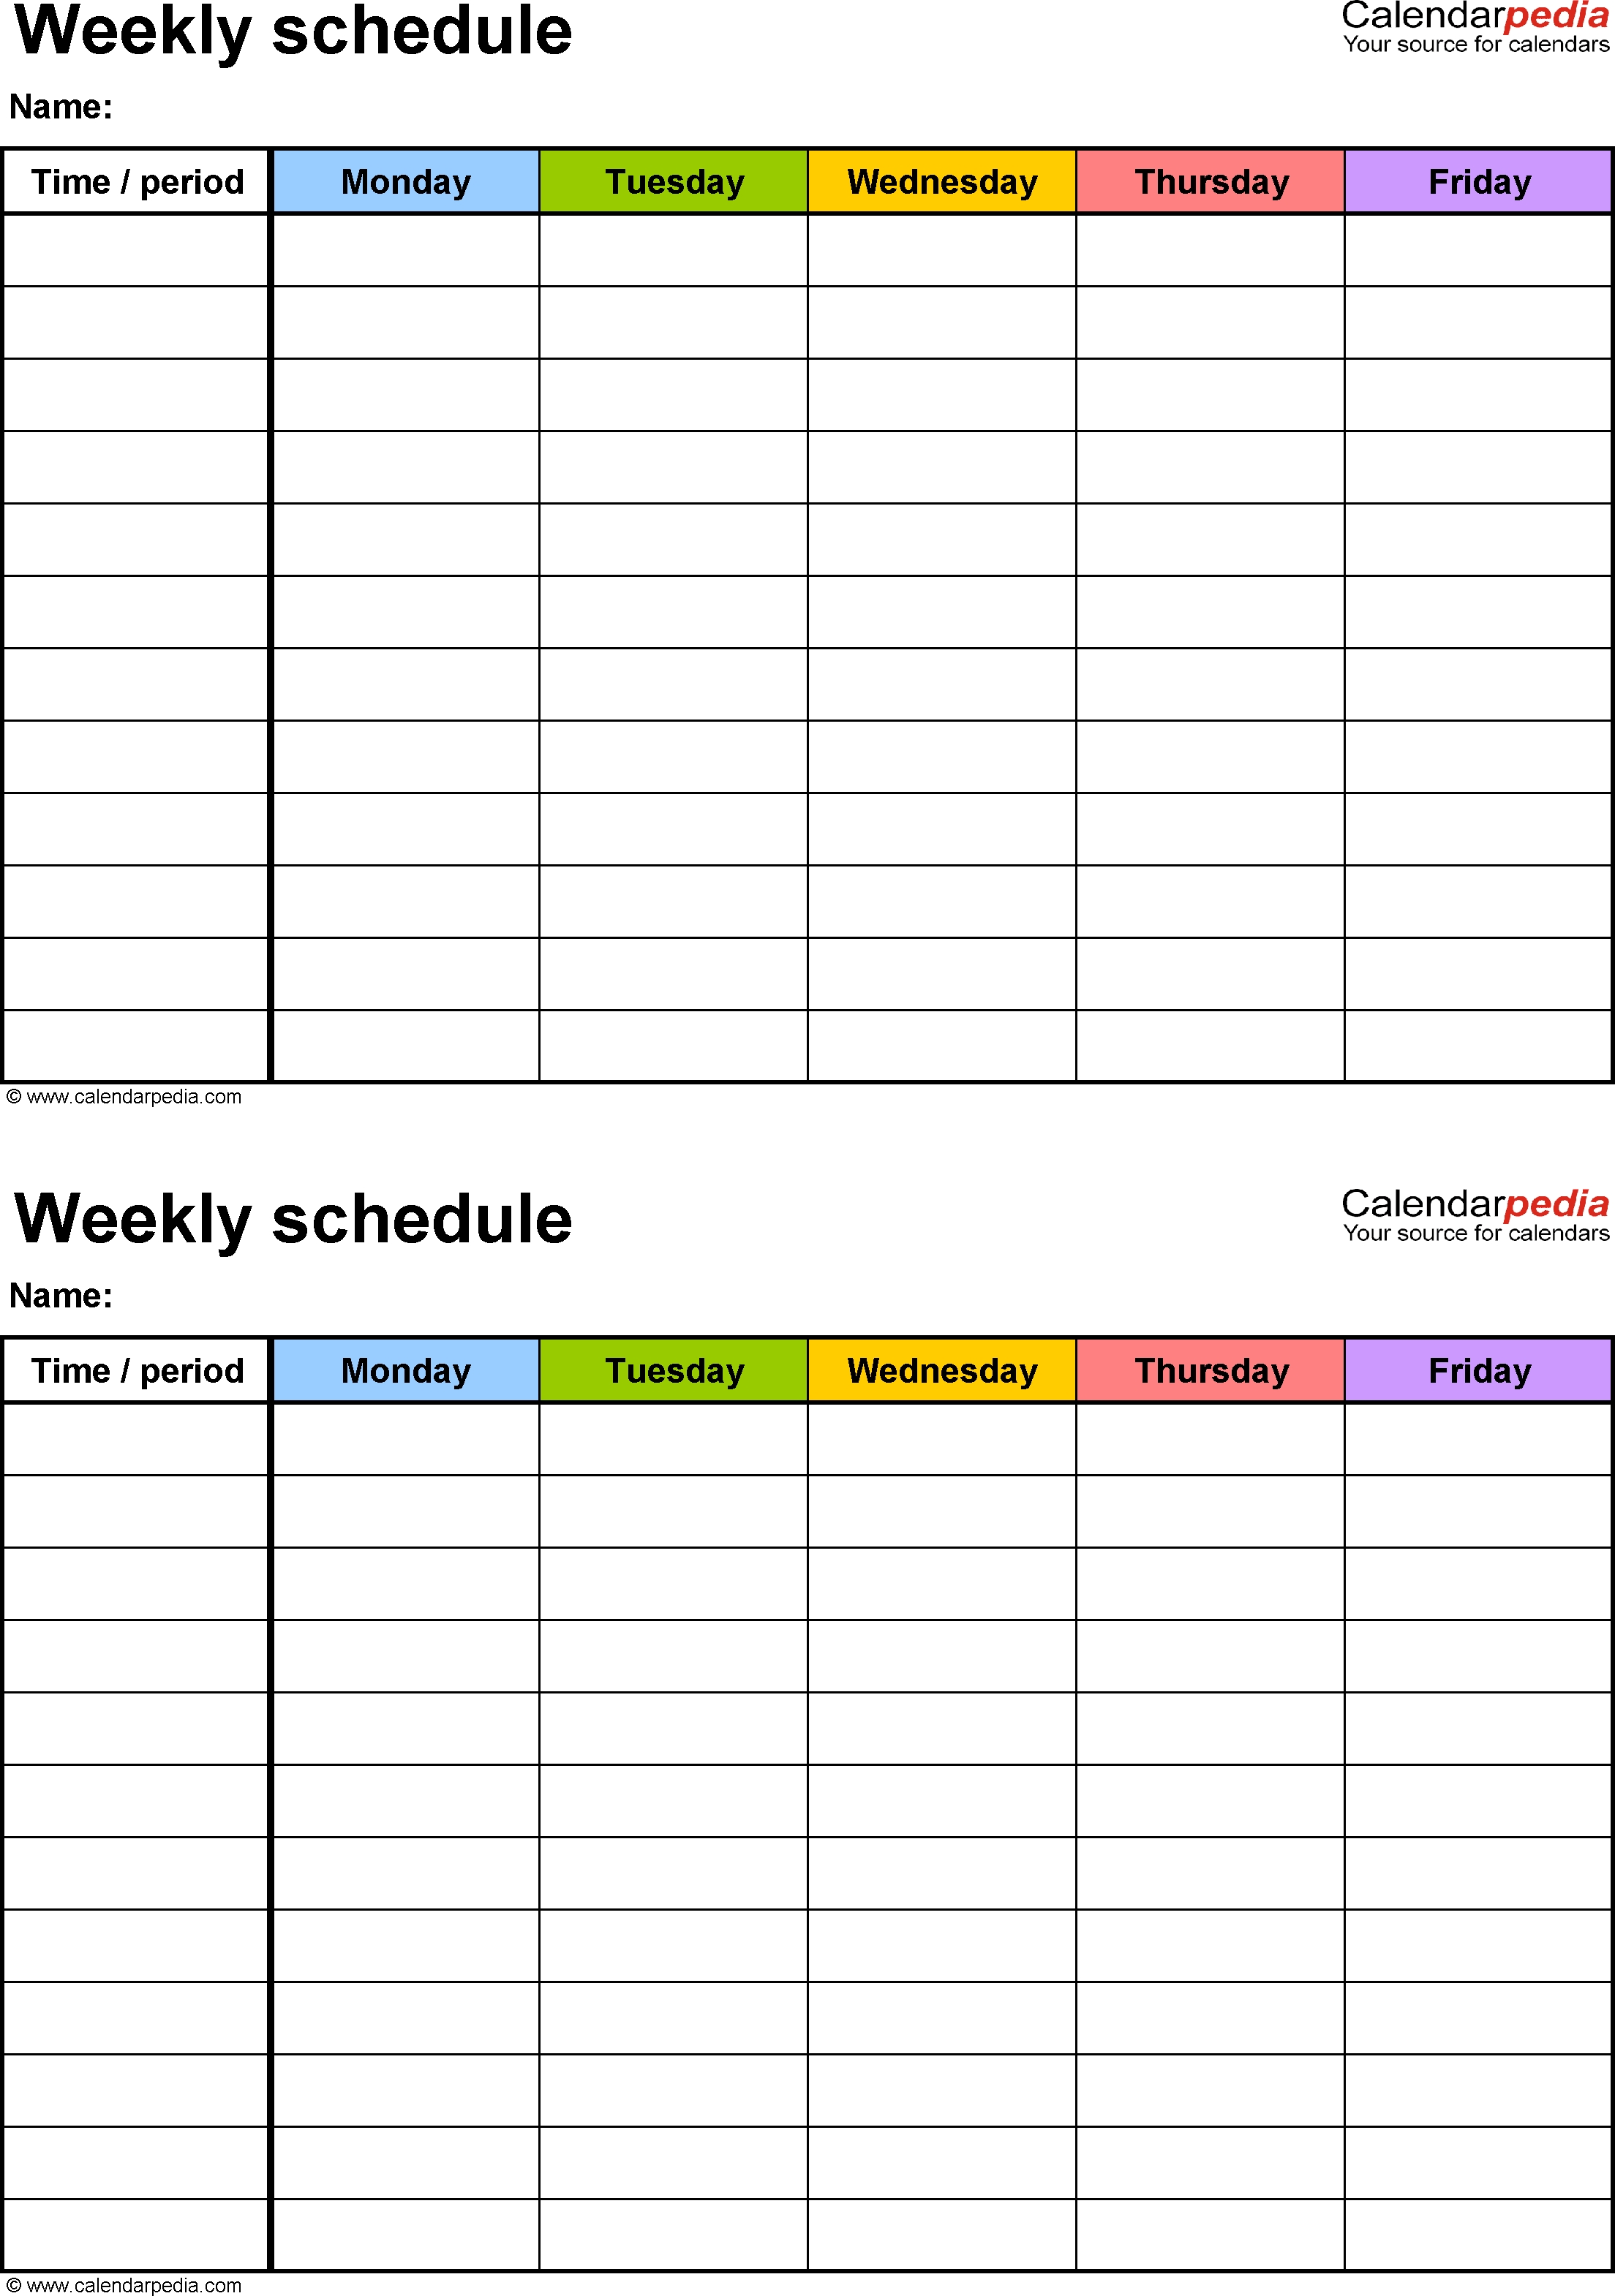 Weekly Endar Template Free Schedule Templates For Excel Google Docs with Full Size Weekly Calendar Templates